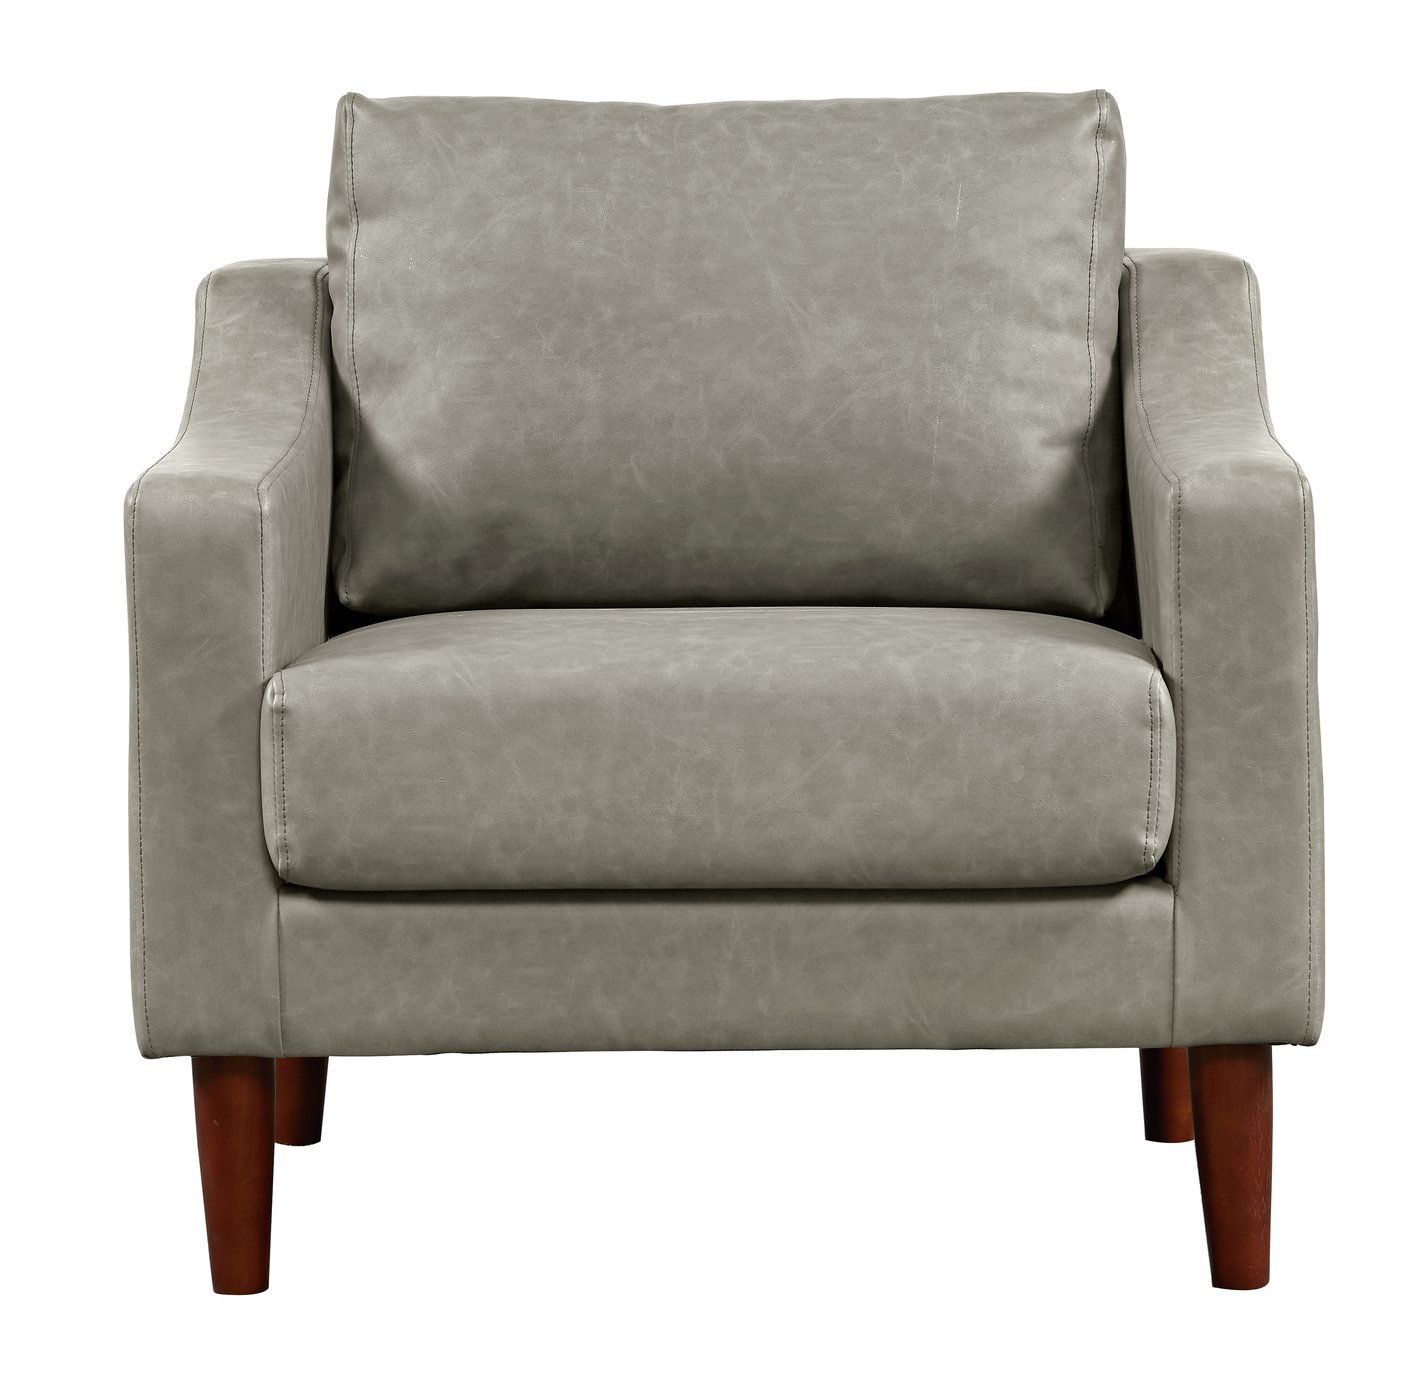 Argos Home Brixton Faux Leather Armchair – Grey £200.00 @ Argos